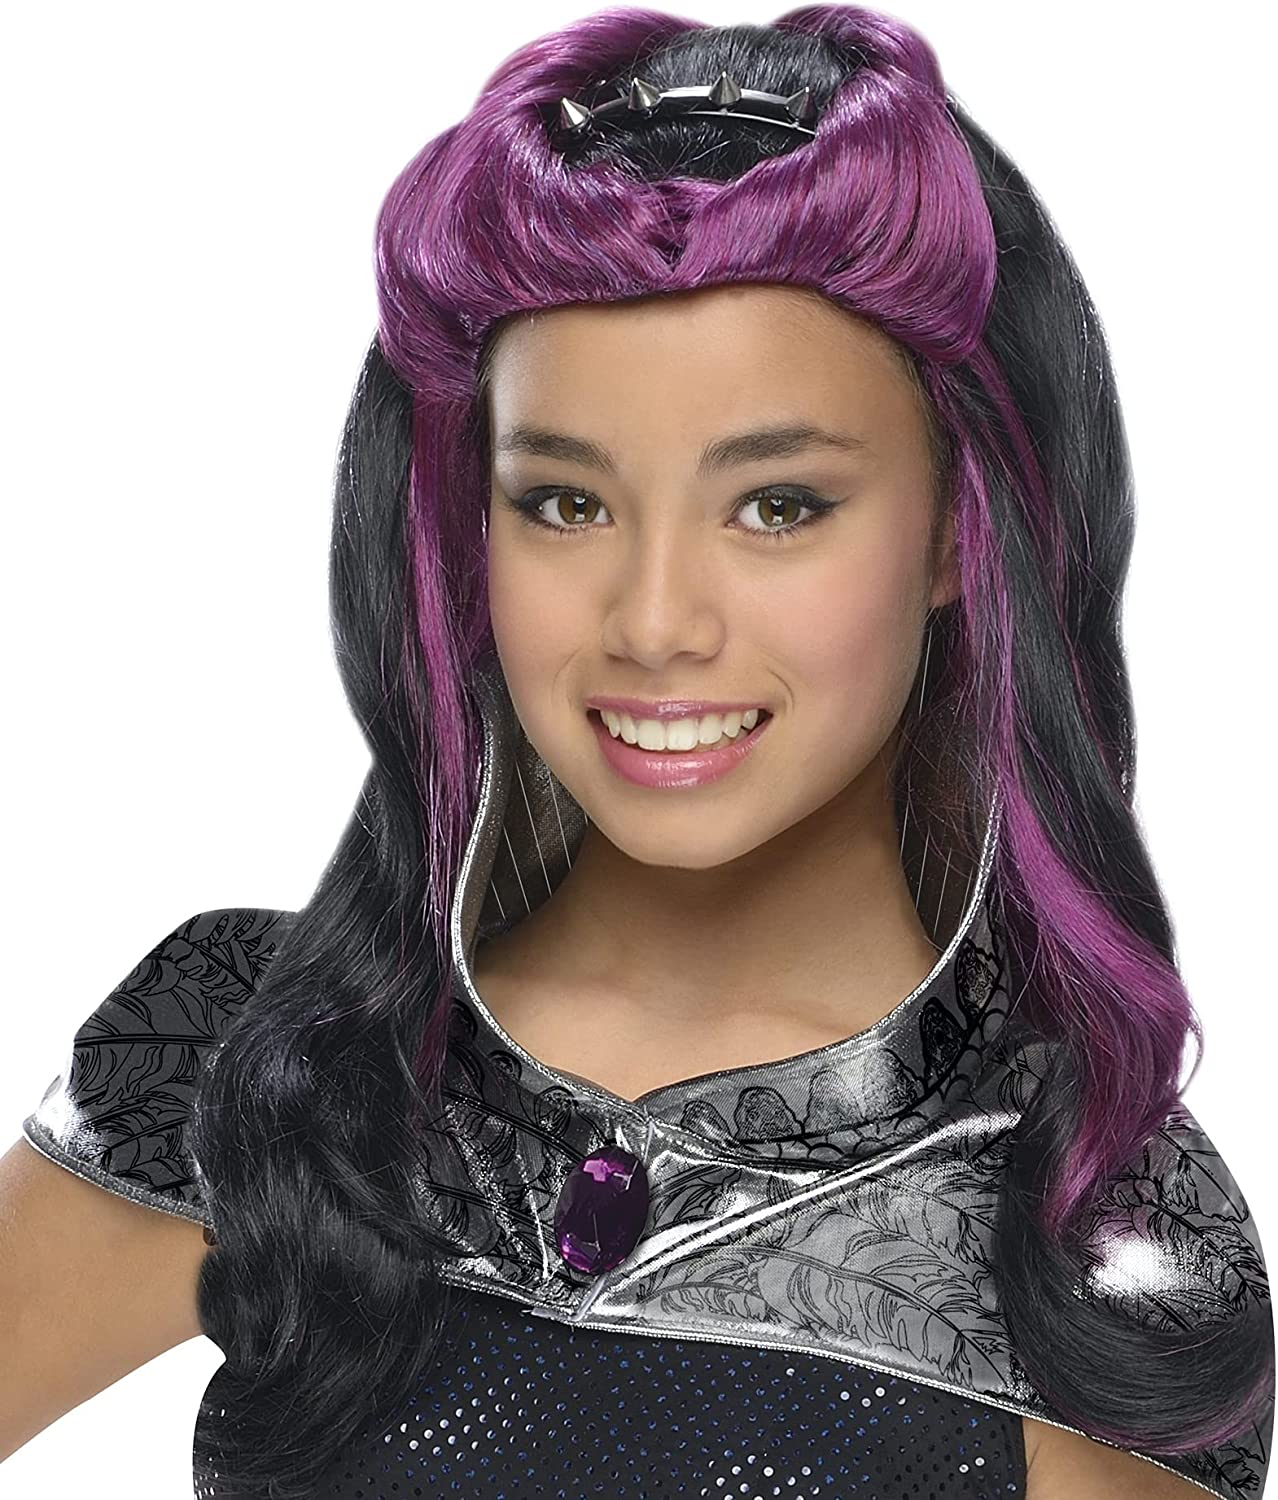 Rubies Ever After High Child Raven Queen Wig with Headpiece : Clothing, Shoes & Jewelry